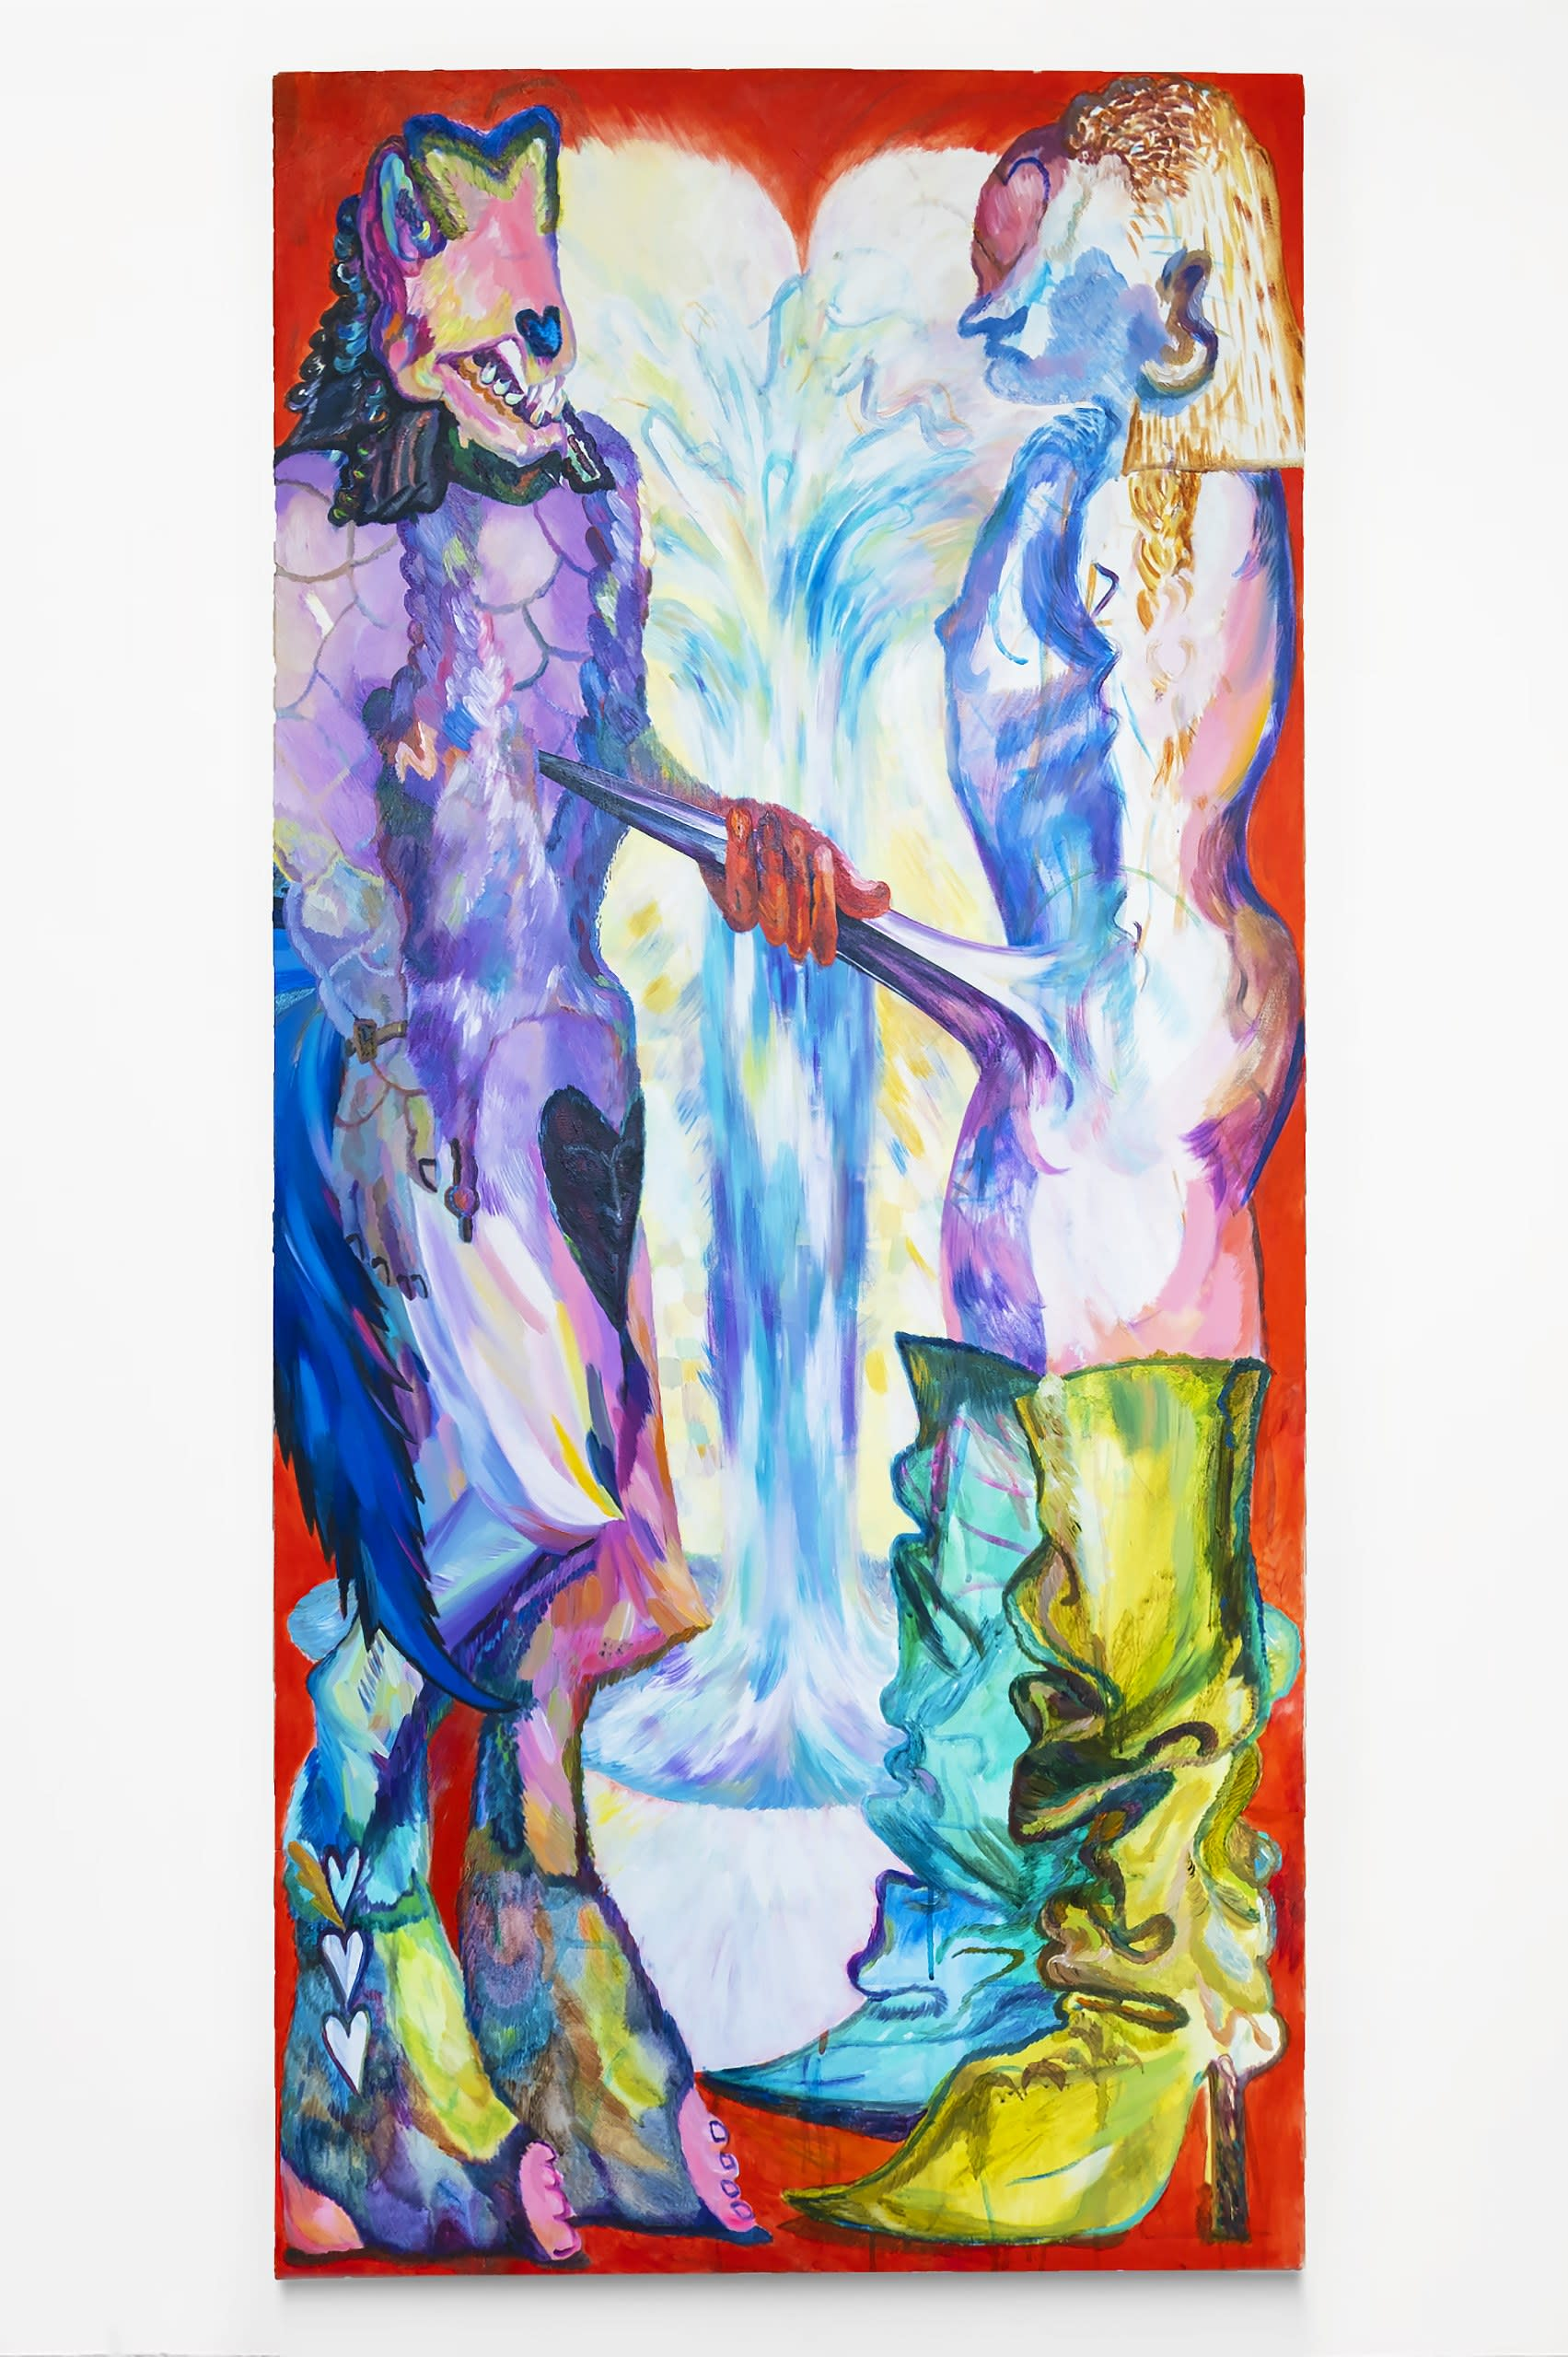 Spear of Longinus, 2020, oil and acrylic on canvas, 163 x 78 cm